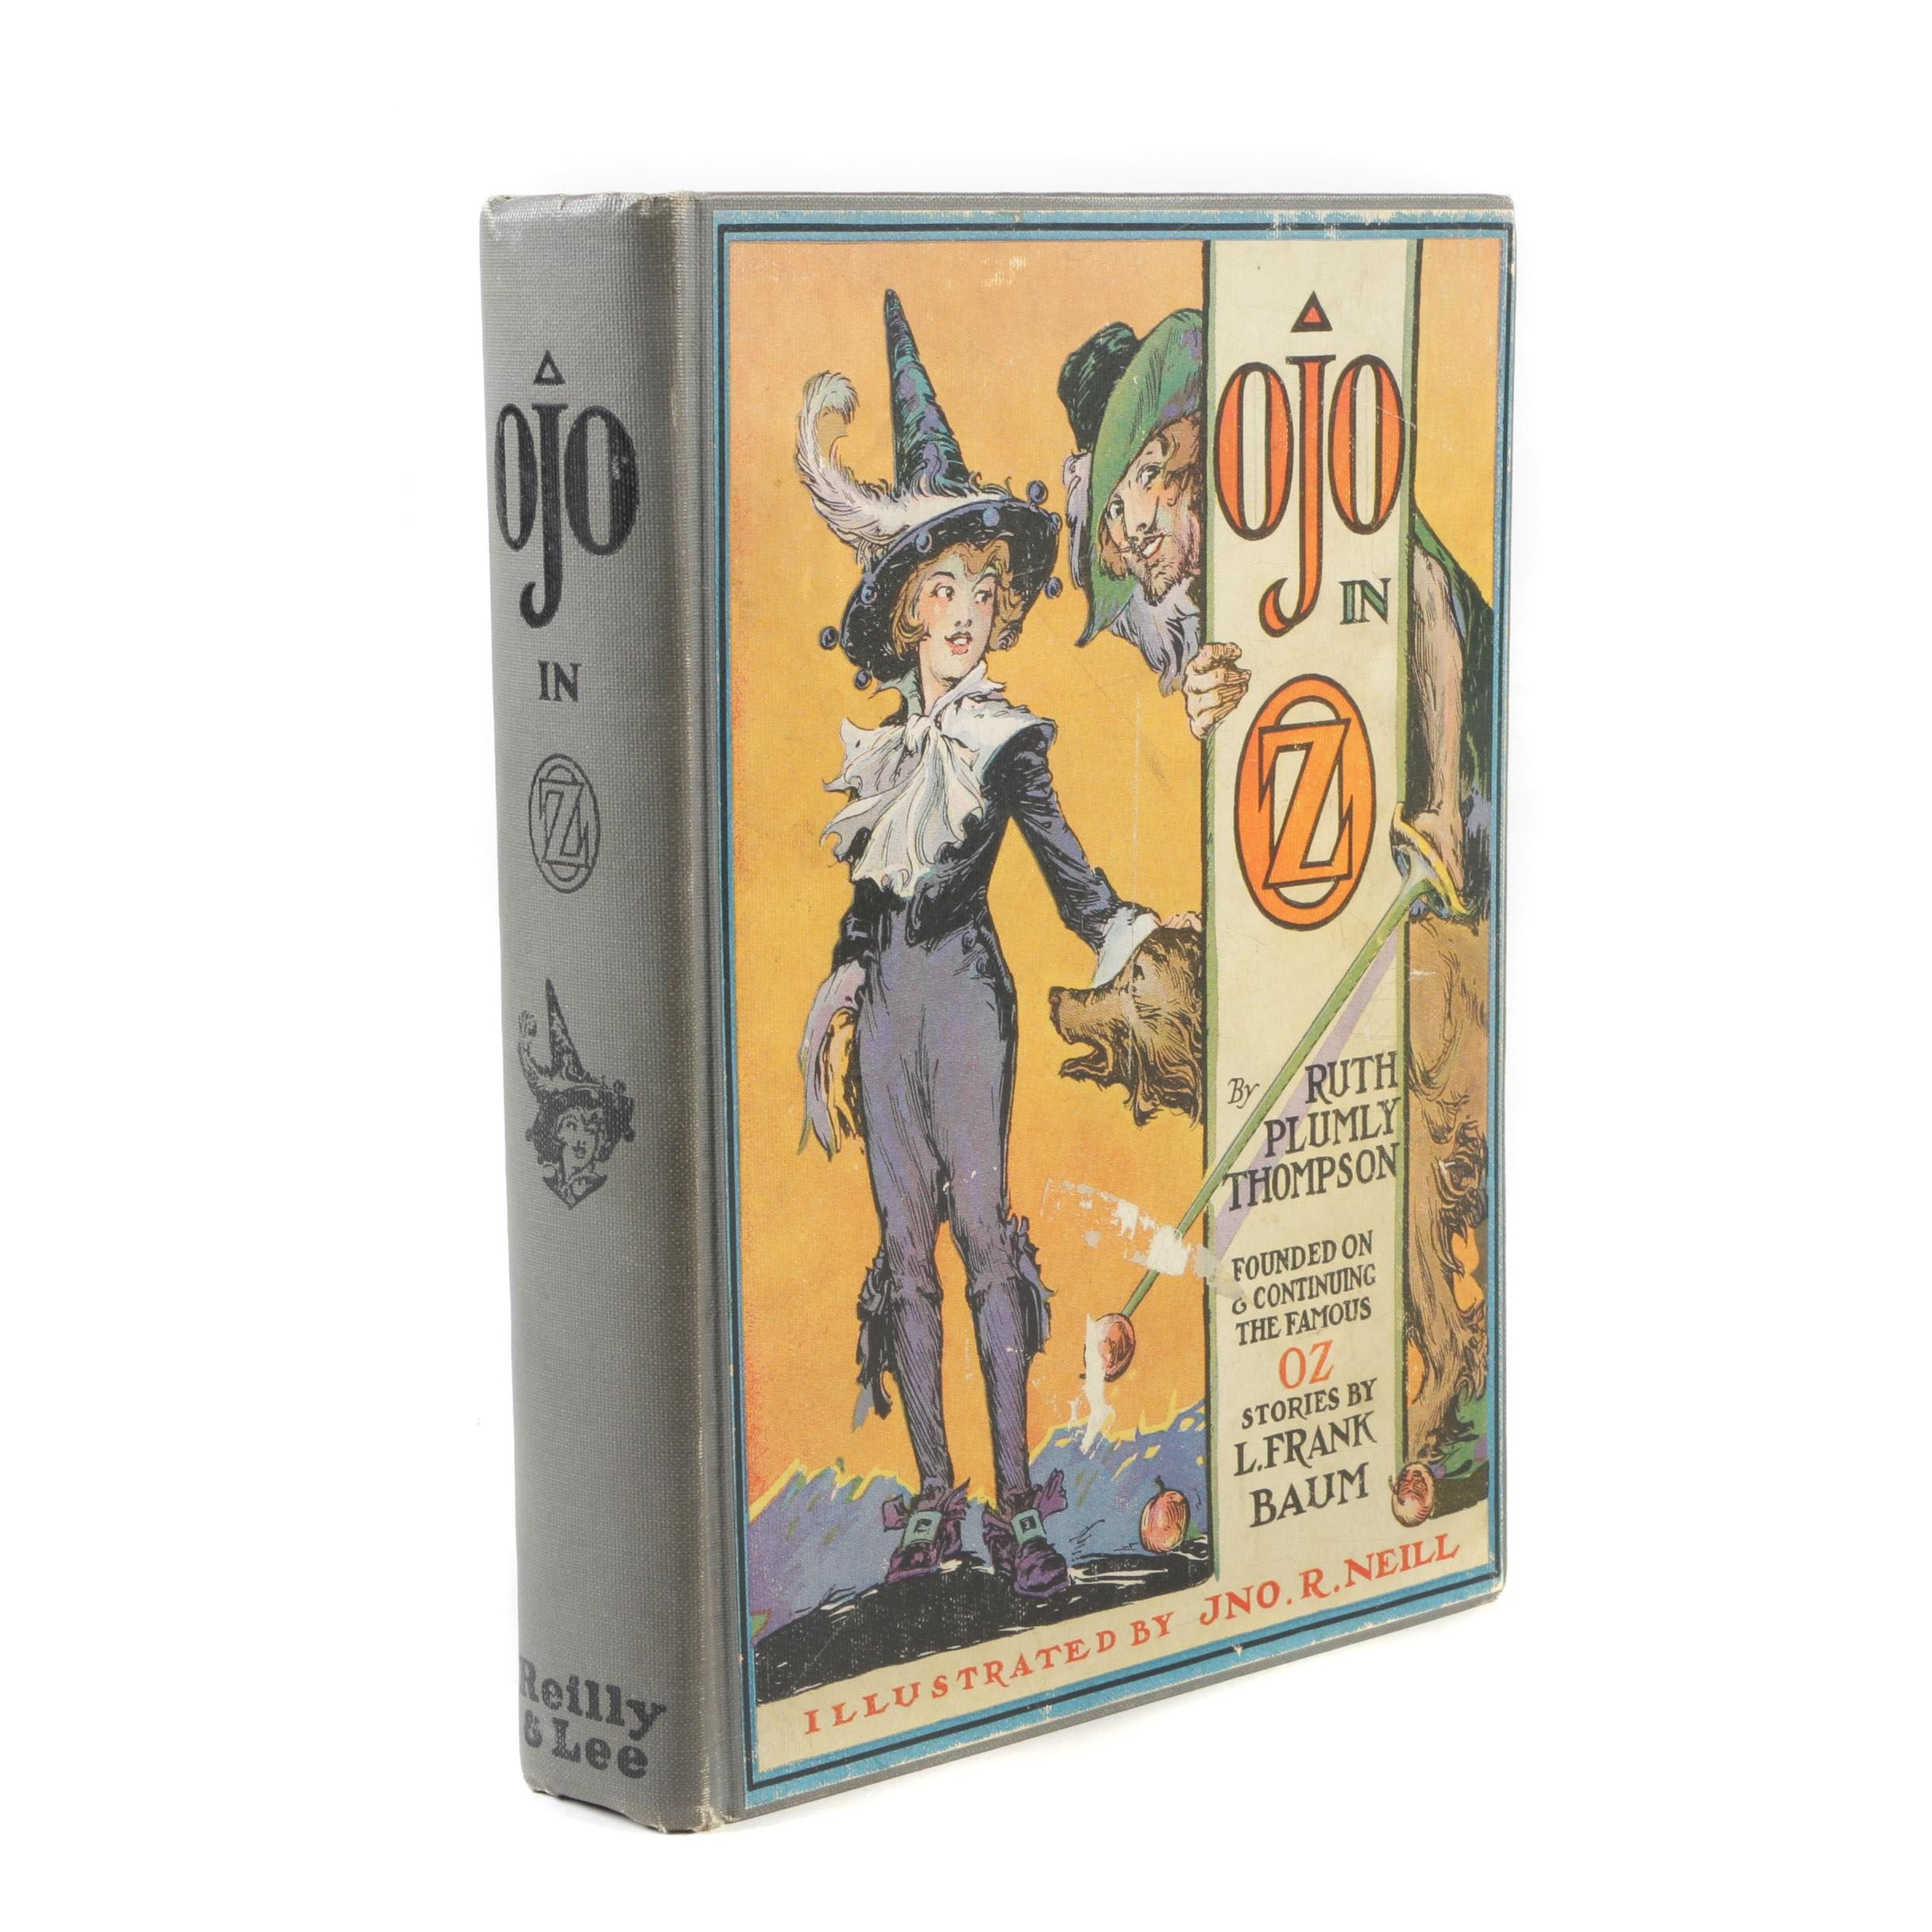 """1933 First Printing """"Ojo in Oz"""" by Ruth Plumly Thompson"""